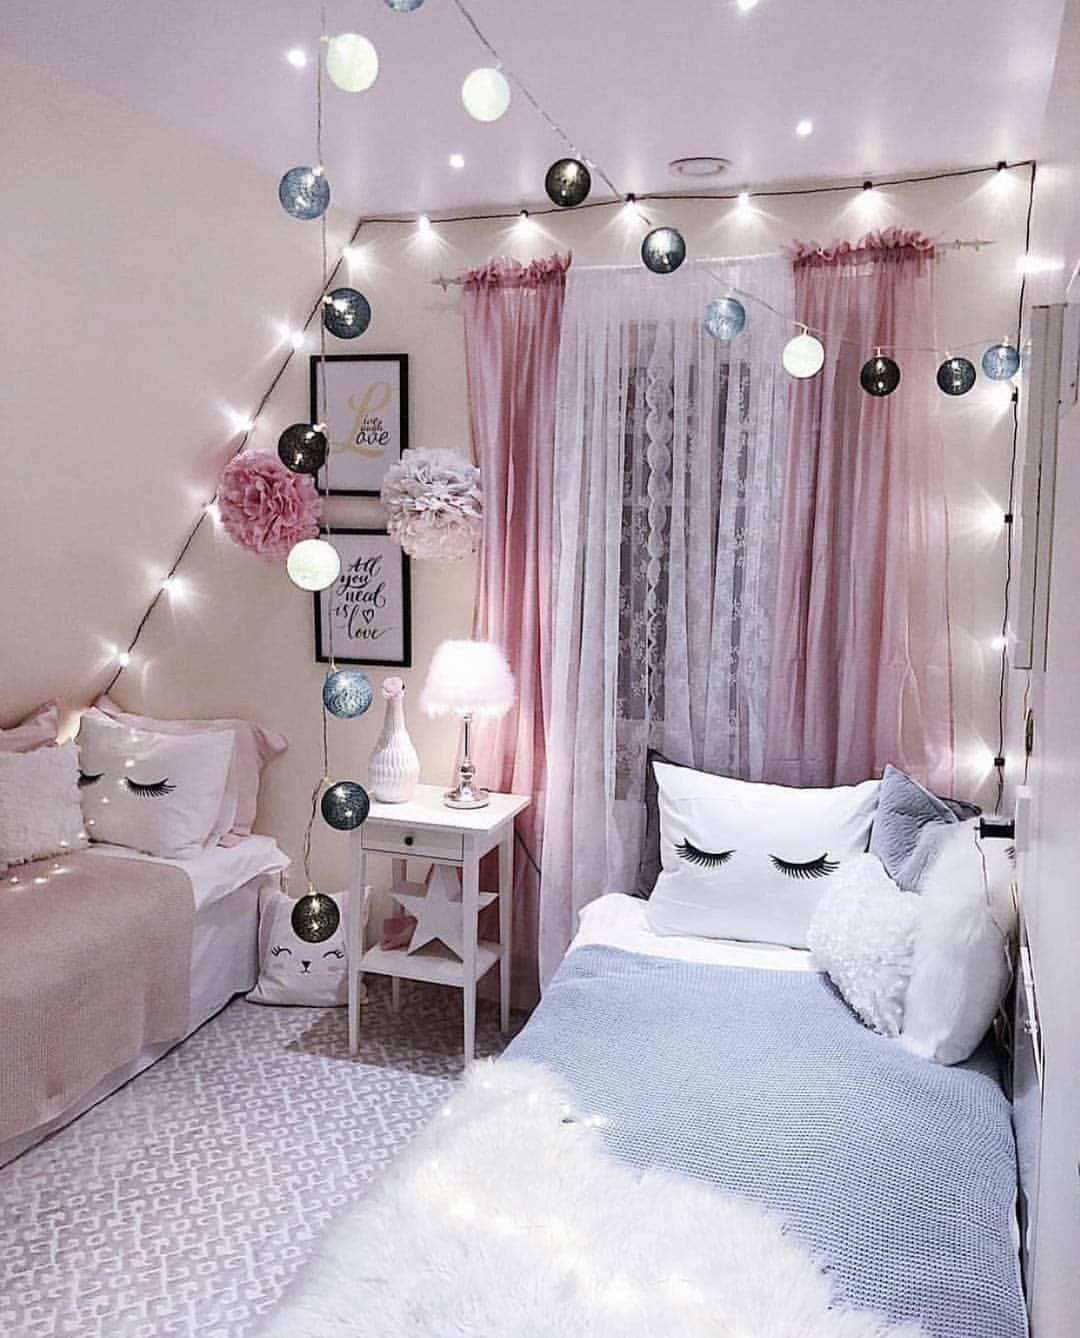 1 2 3 Or 4 Leave Your Comment Tag Your Besties Follow Artcorect Via Creativesp In 2020 Girl Bedroom Designs Bedroom Decor Girl Bedroom Decor